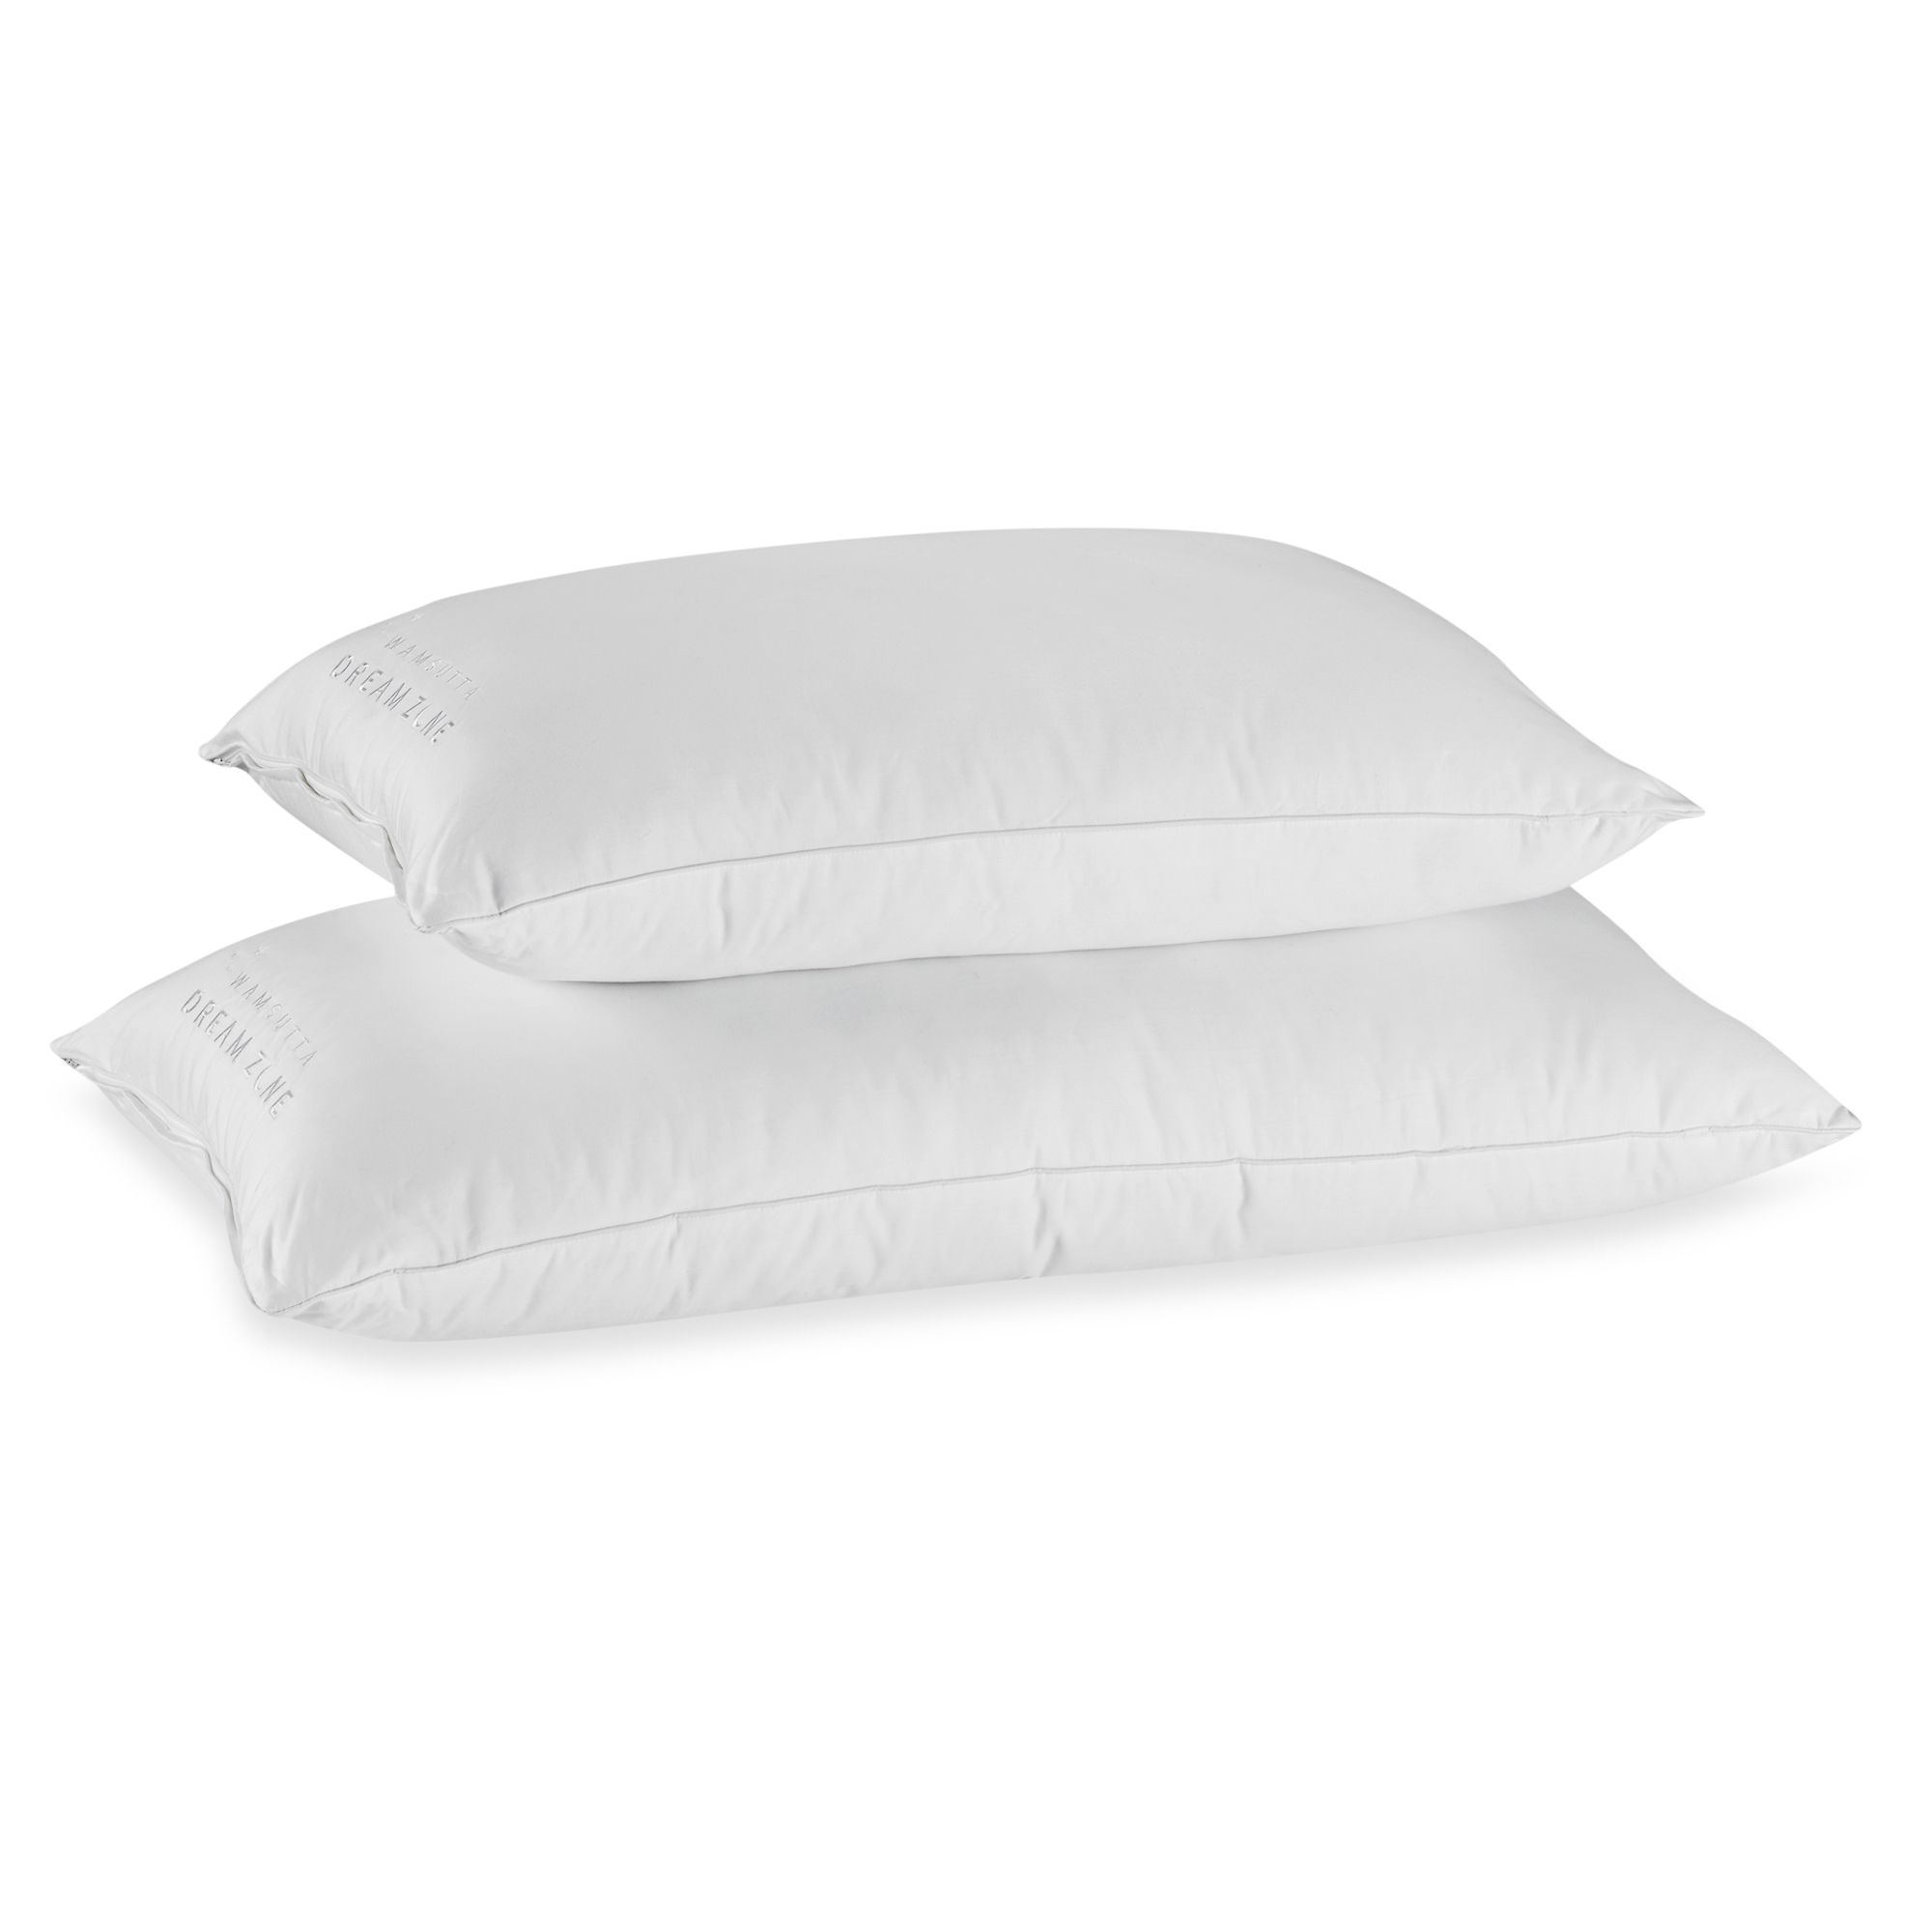 Down Bed Pillows Body Pillows & Pillow Protectors Bed Bath & Beyond